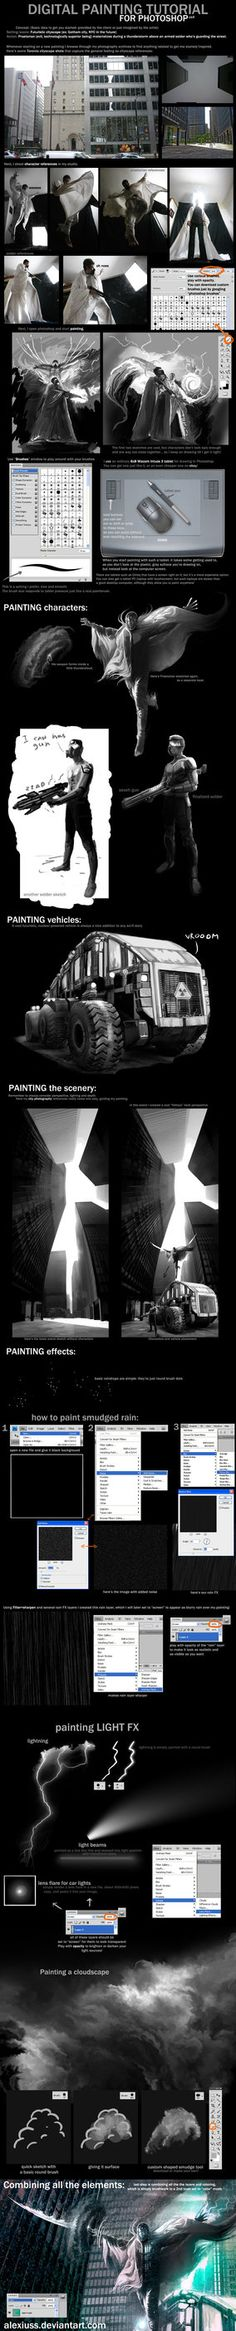 Photoshop: Painting Tutorial 2 by `alexiuss on deviantART